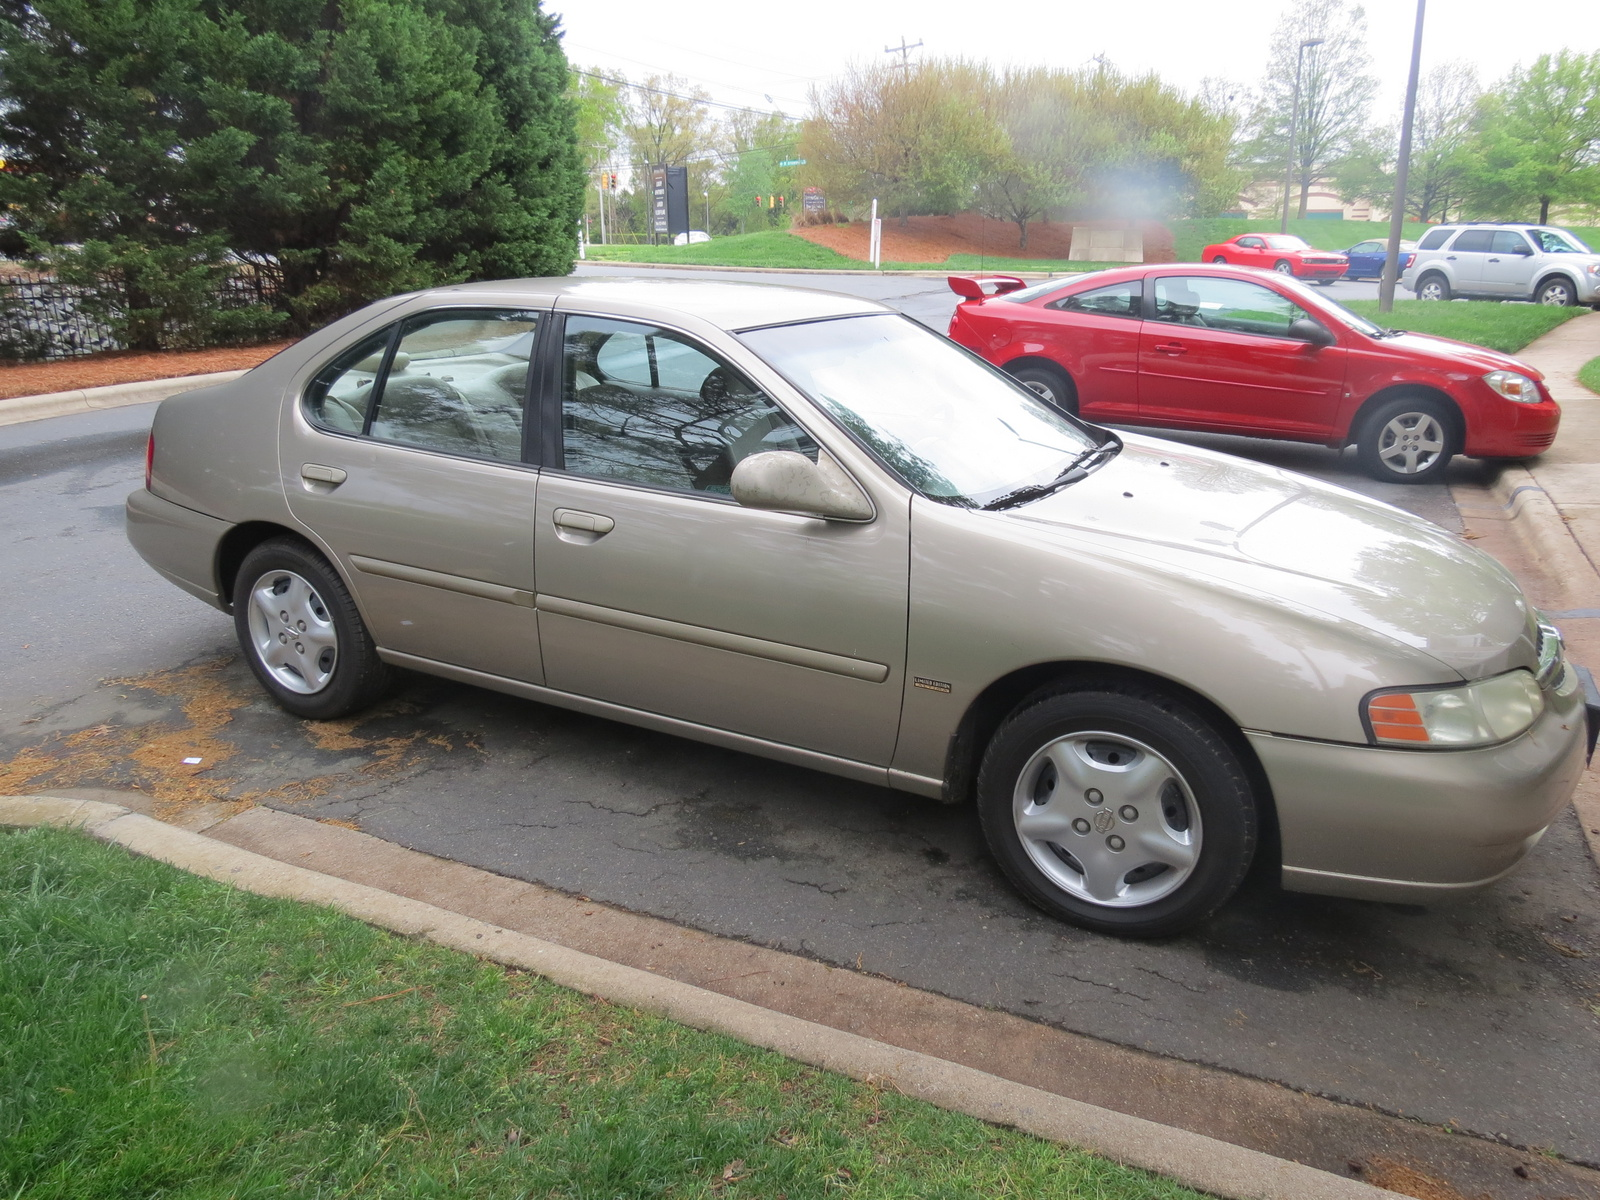 2001 nissan altima overview cargurus for Nissan altima 2001 motor